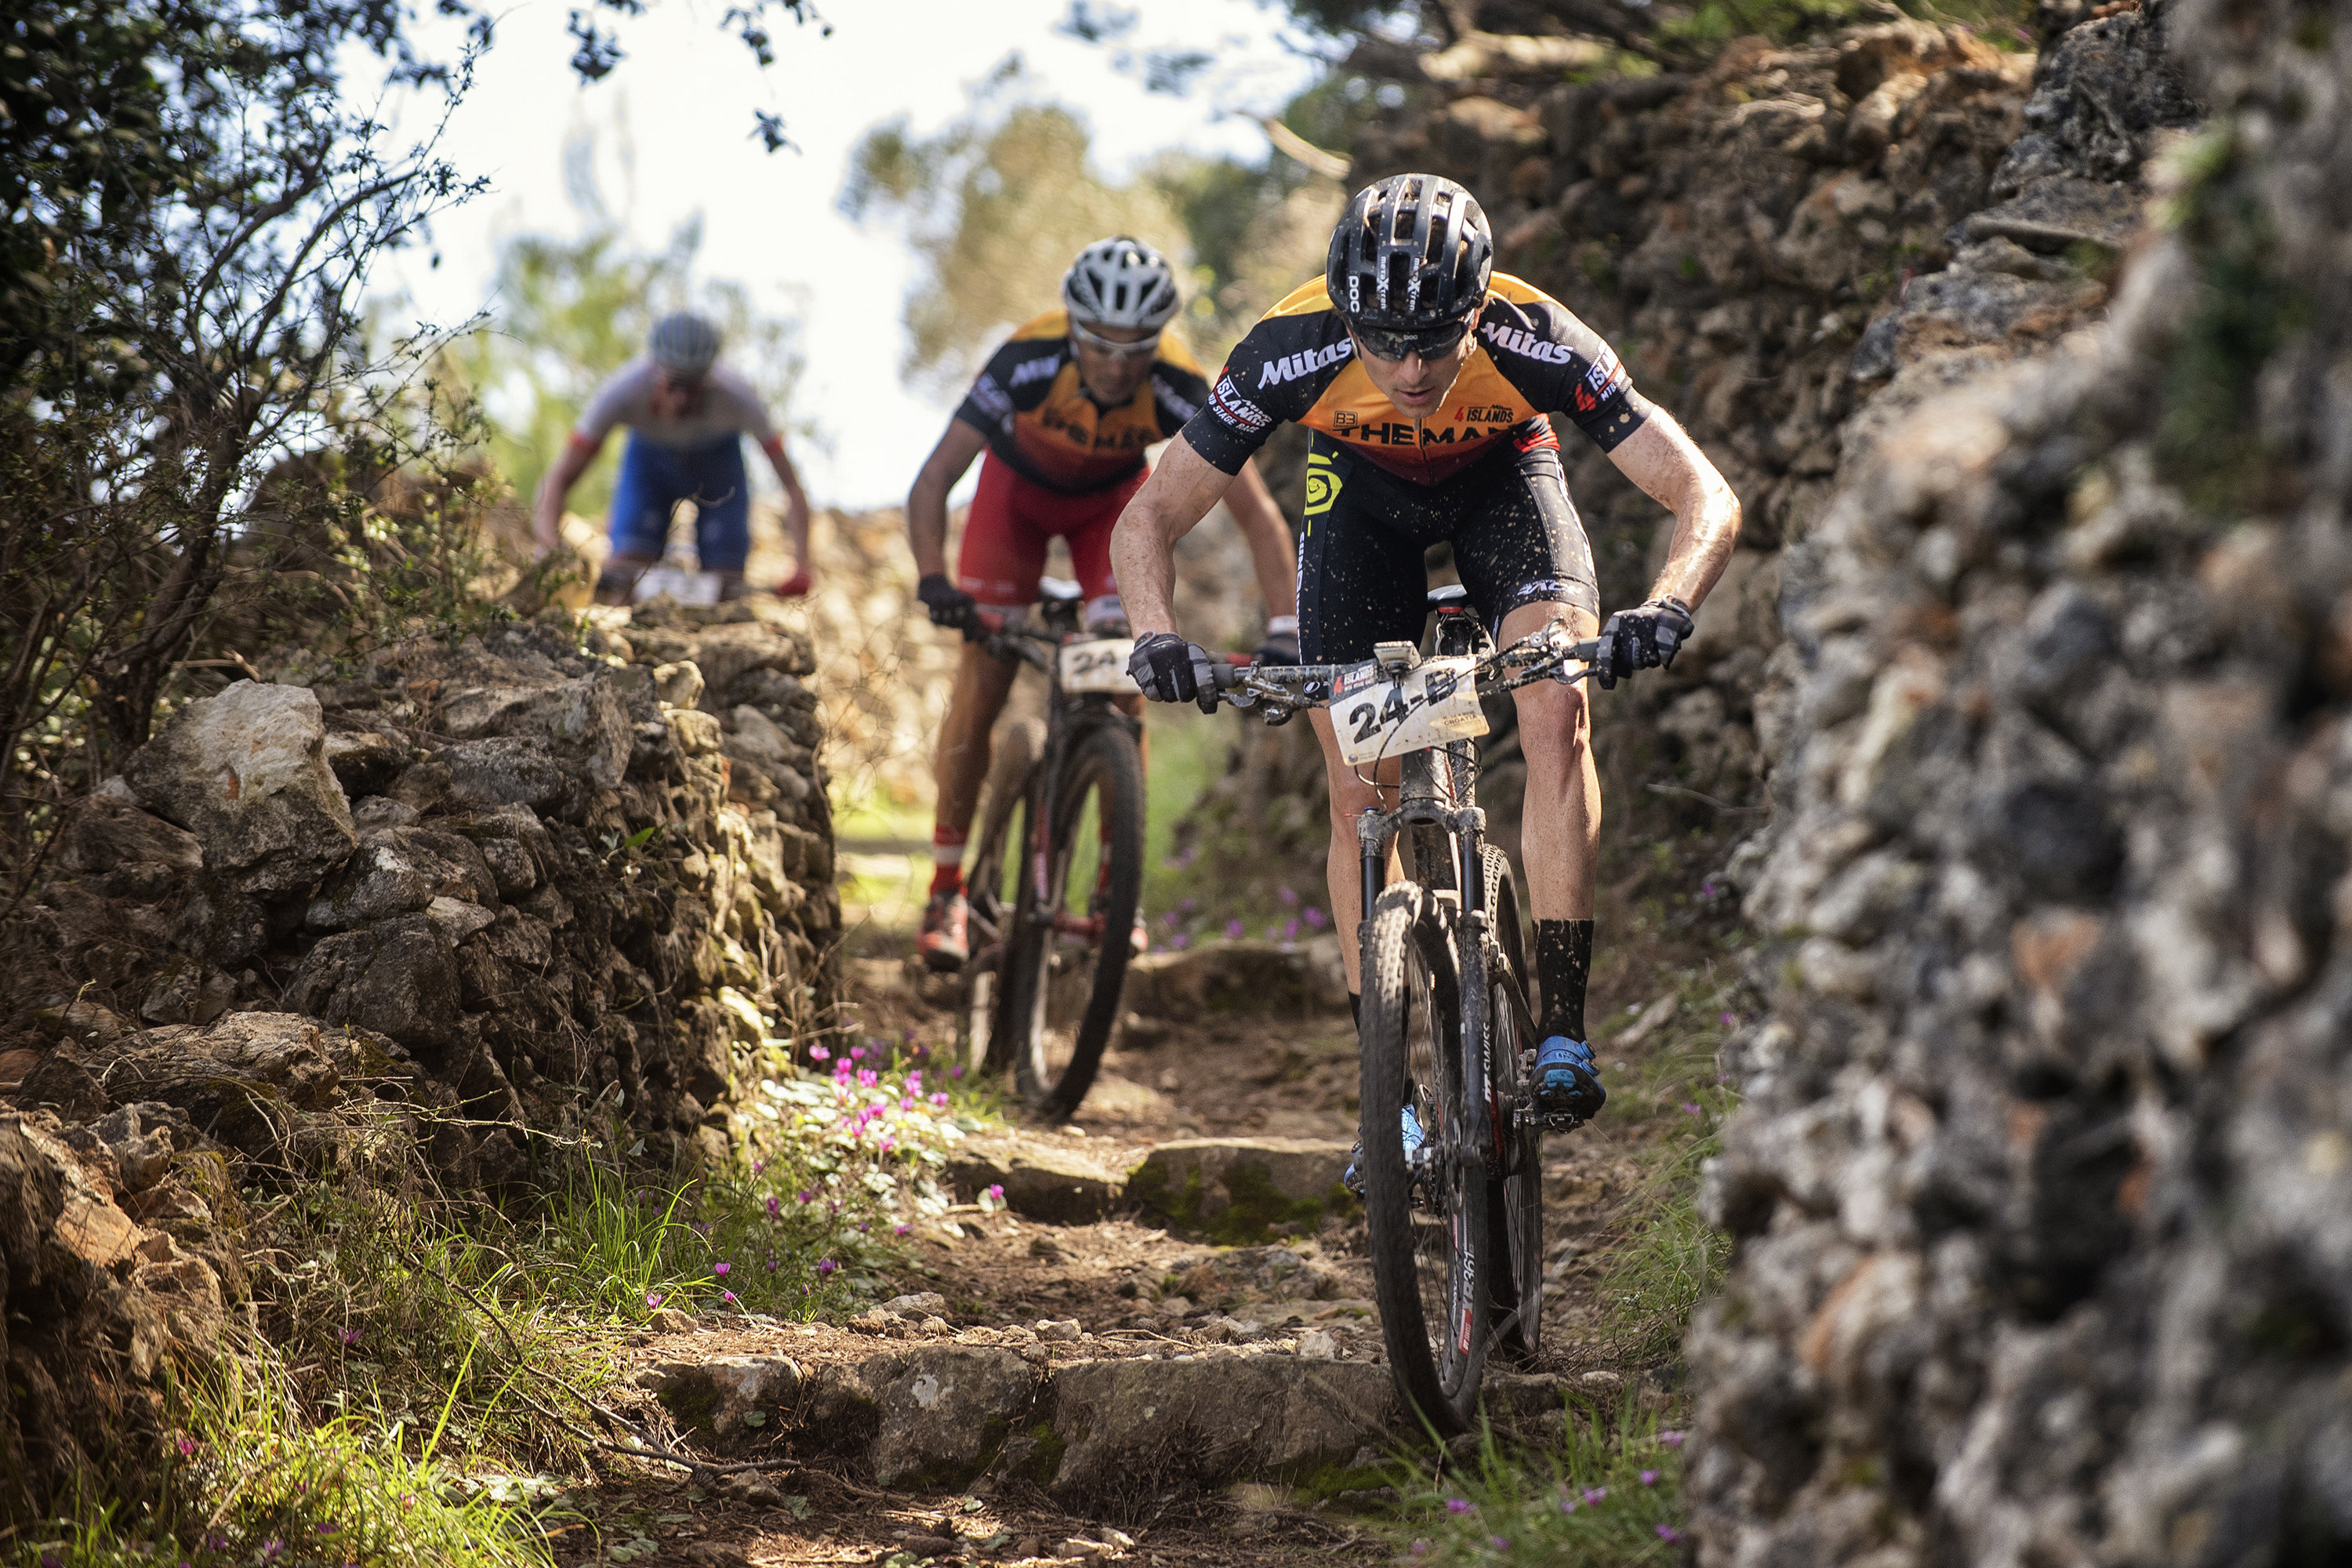 ICARUS SPORTS PRESENTS MOUNTAIN BIKE RACING AT MITAS 4 ISLANDS